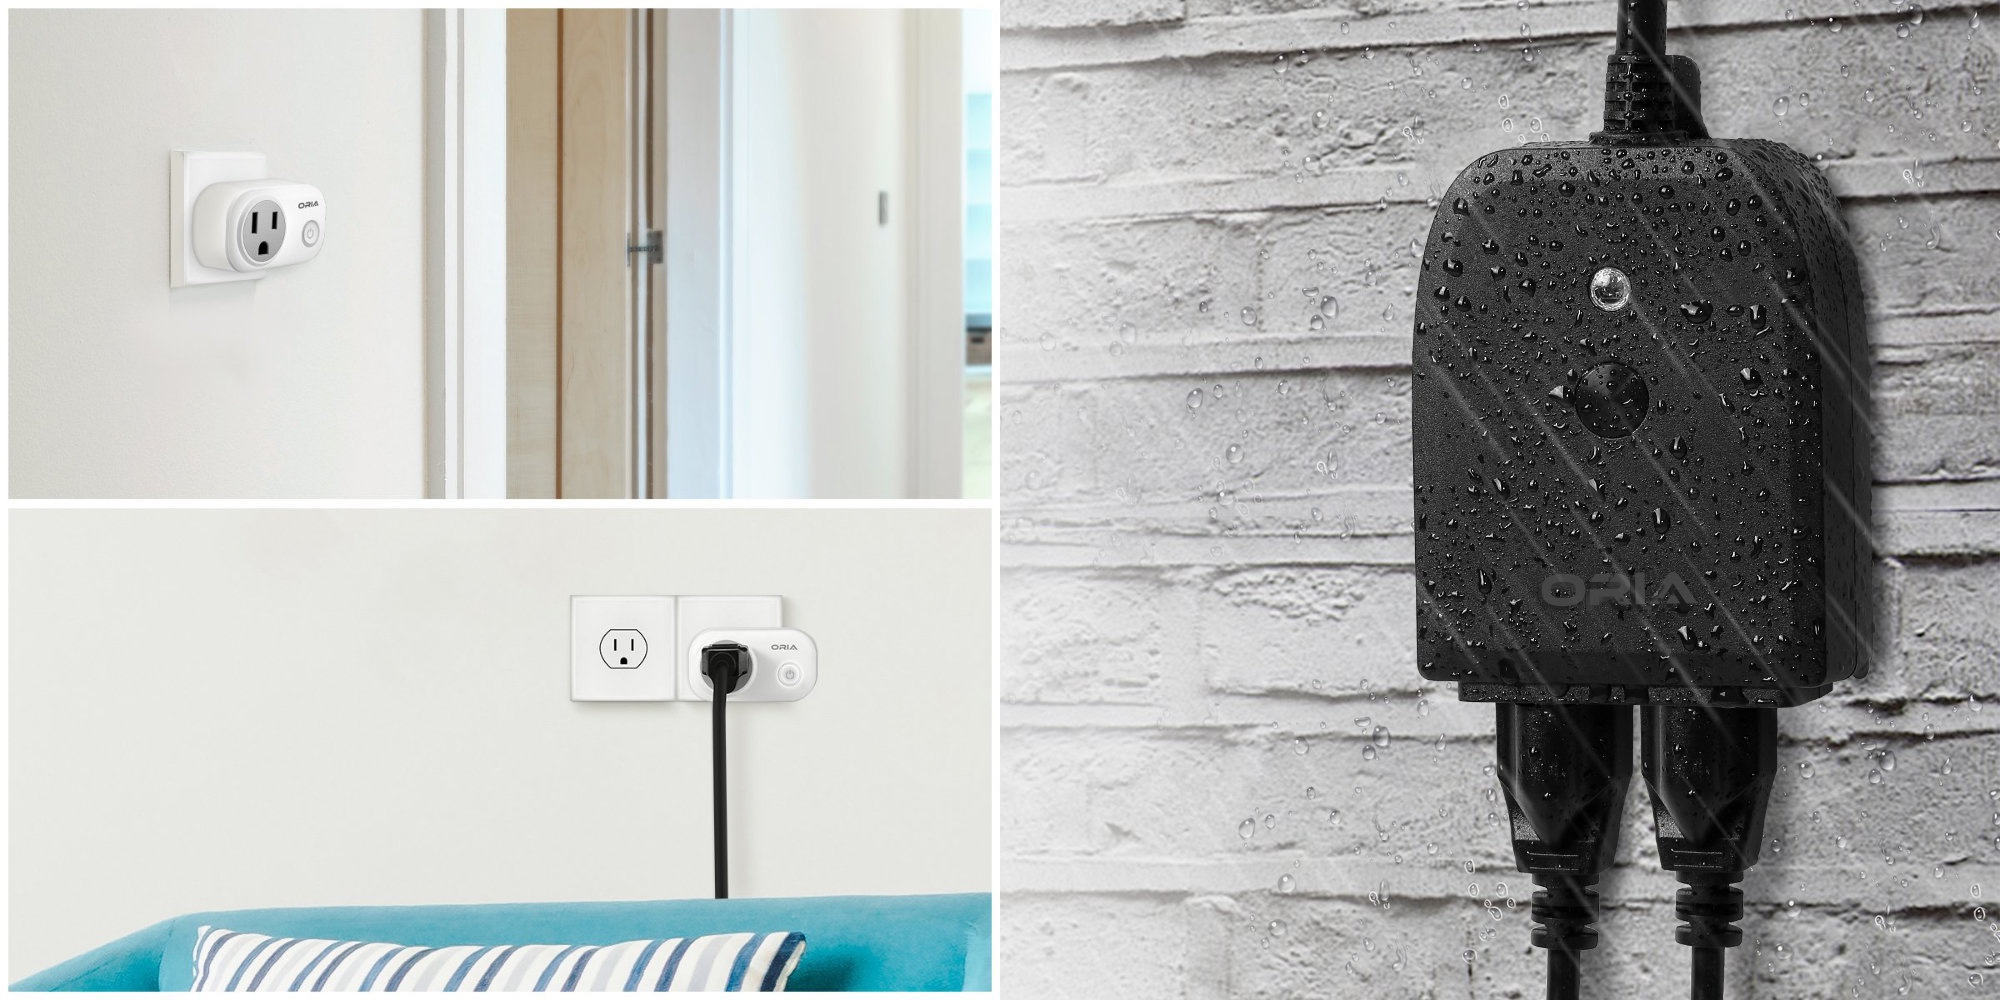 Grab a 2-pack of Alexa & Google Assistant-enabled smart plugs for $20, more from $15.50 (50% off)